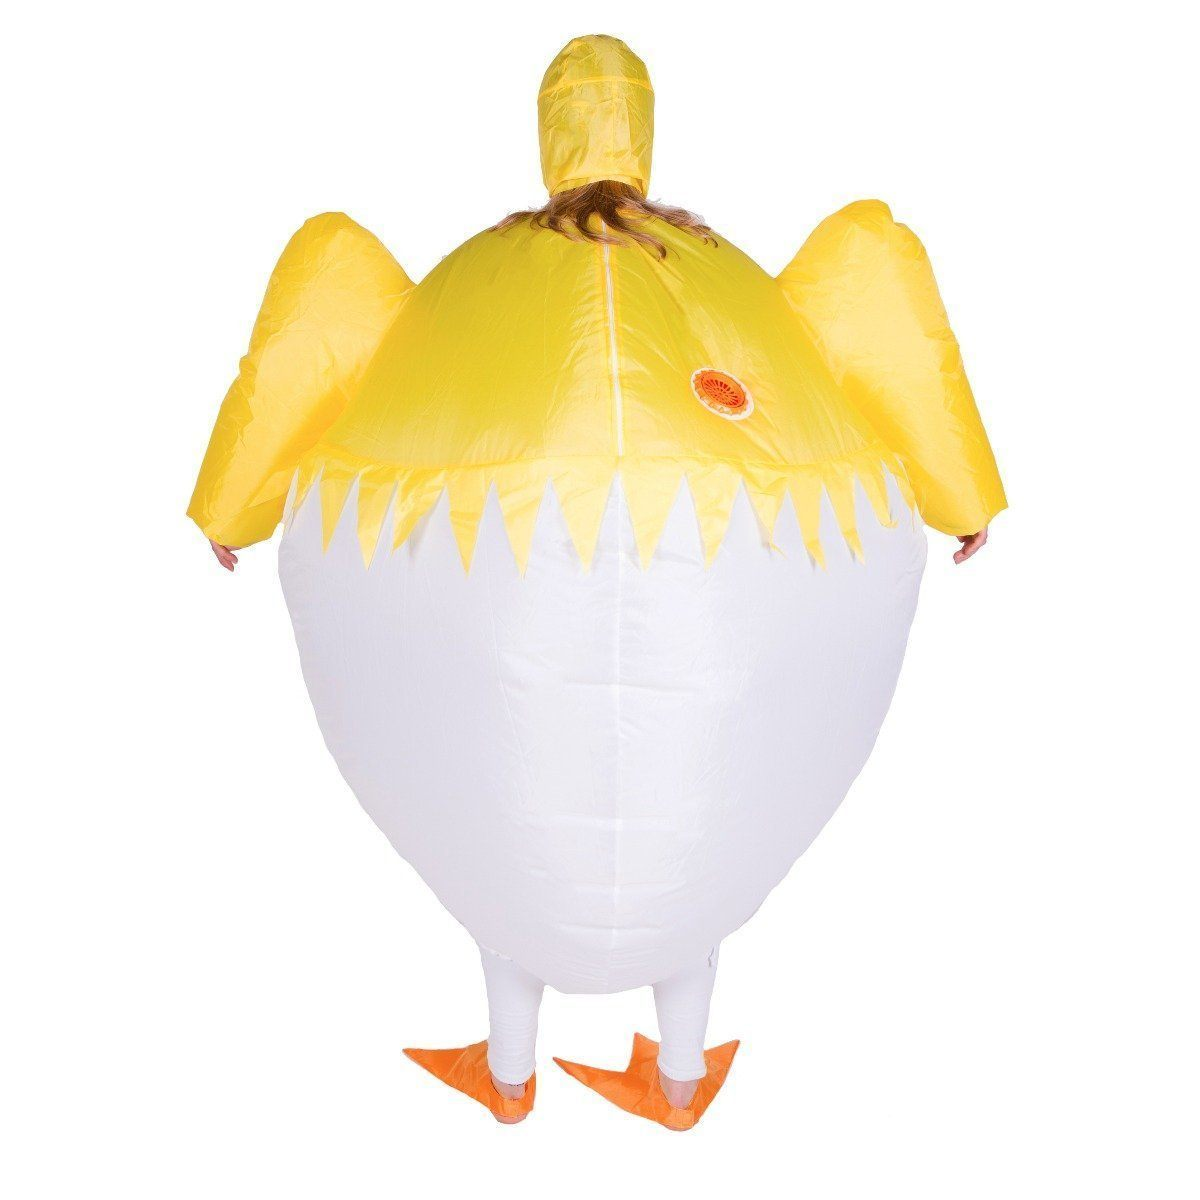 Fancy Dress - Inflatable Chick Costume